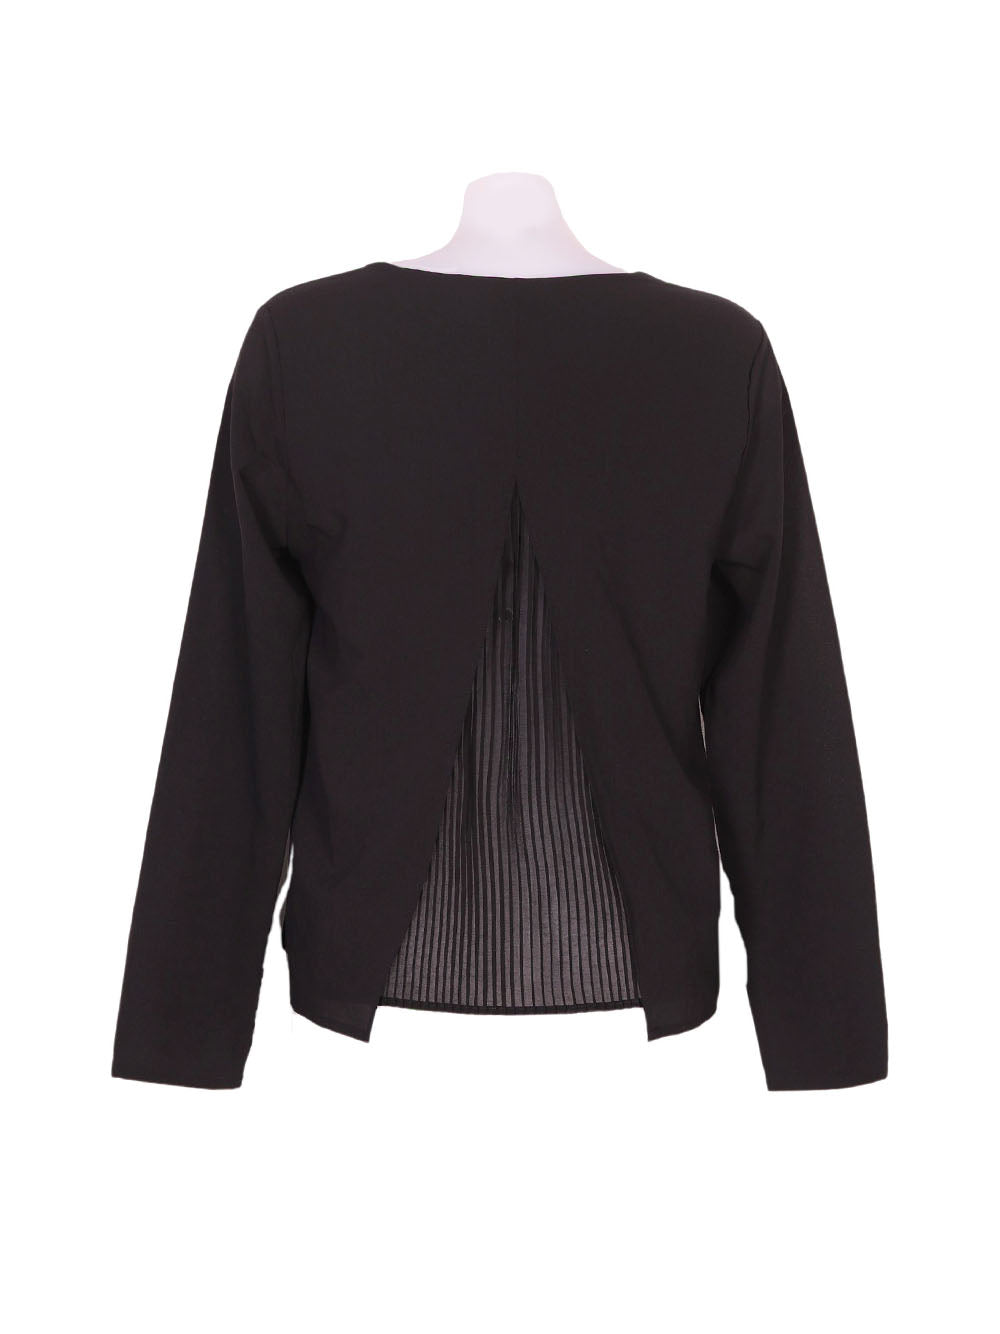 Back photo of Preloved Oltre Black Woman's long sleeved shirt - size 10/M